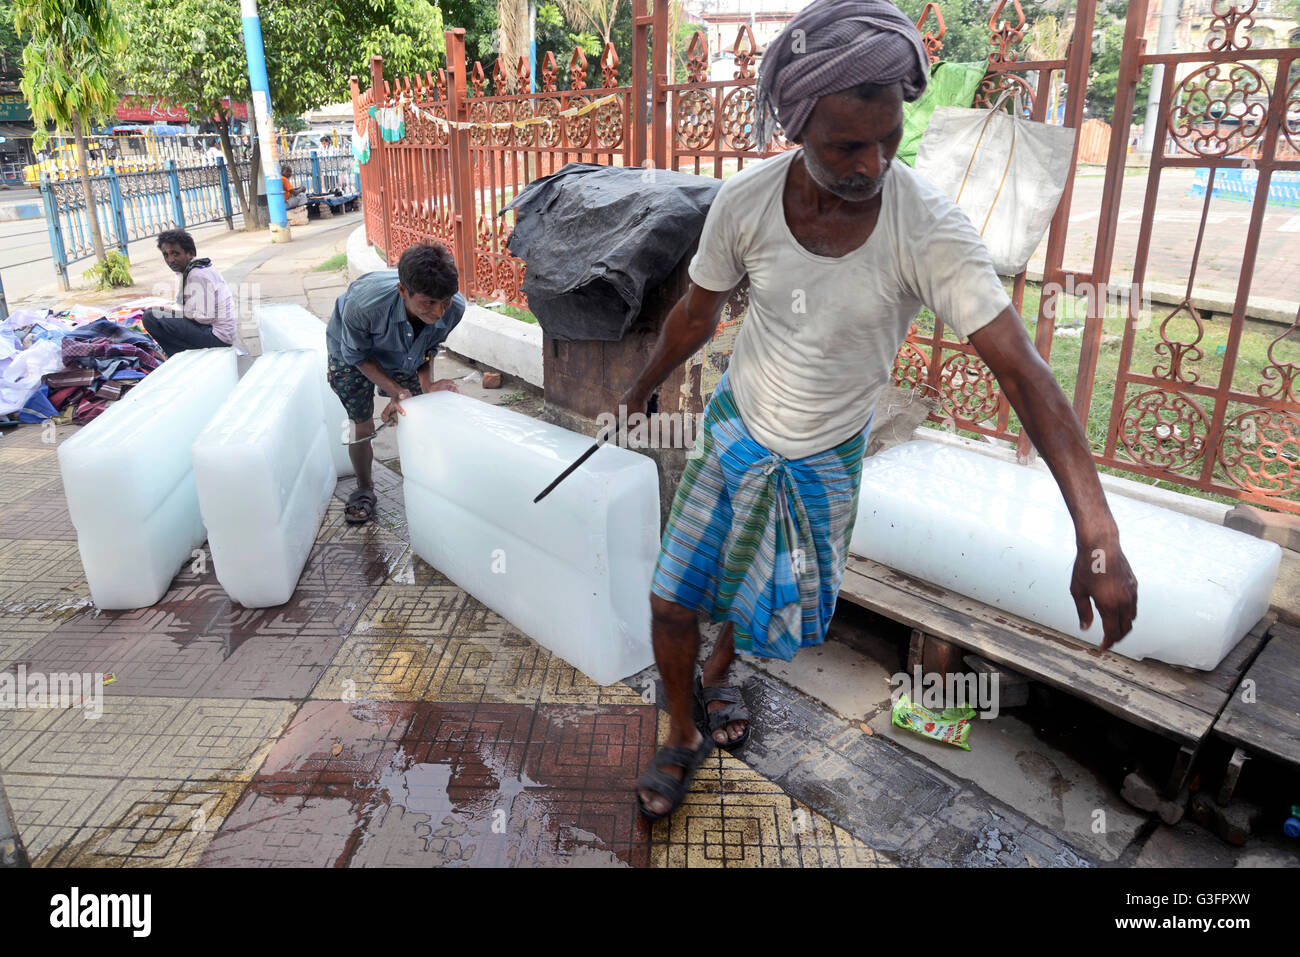 Kolkata, India. 11th June, 2016. Labor bring ice, as demand for ice increase due to heat wave in the region. Heat - Stock Image